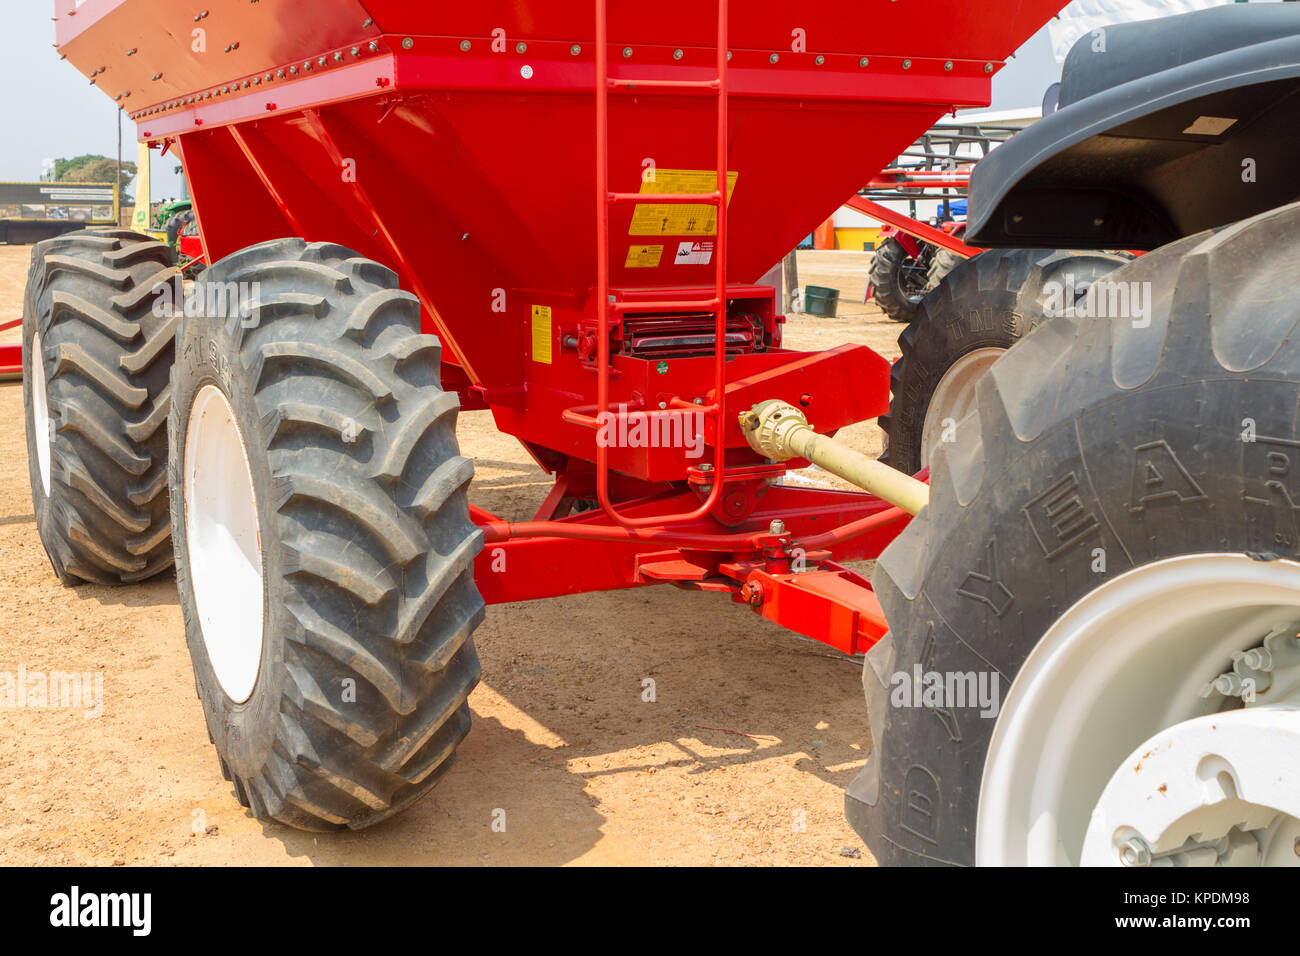 Detail of tractor - Stock Image